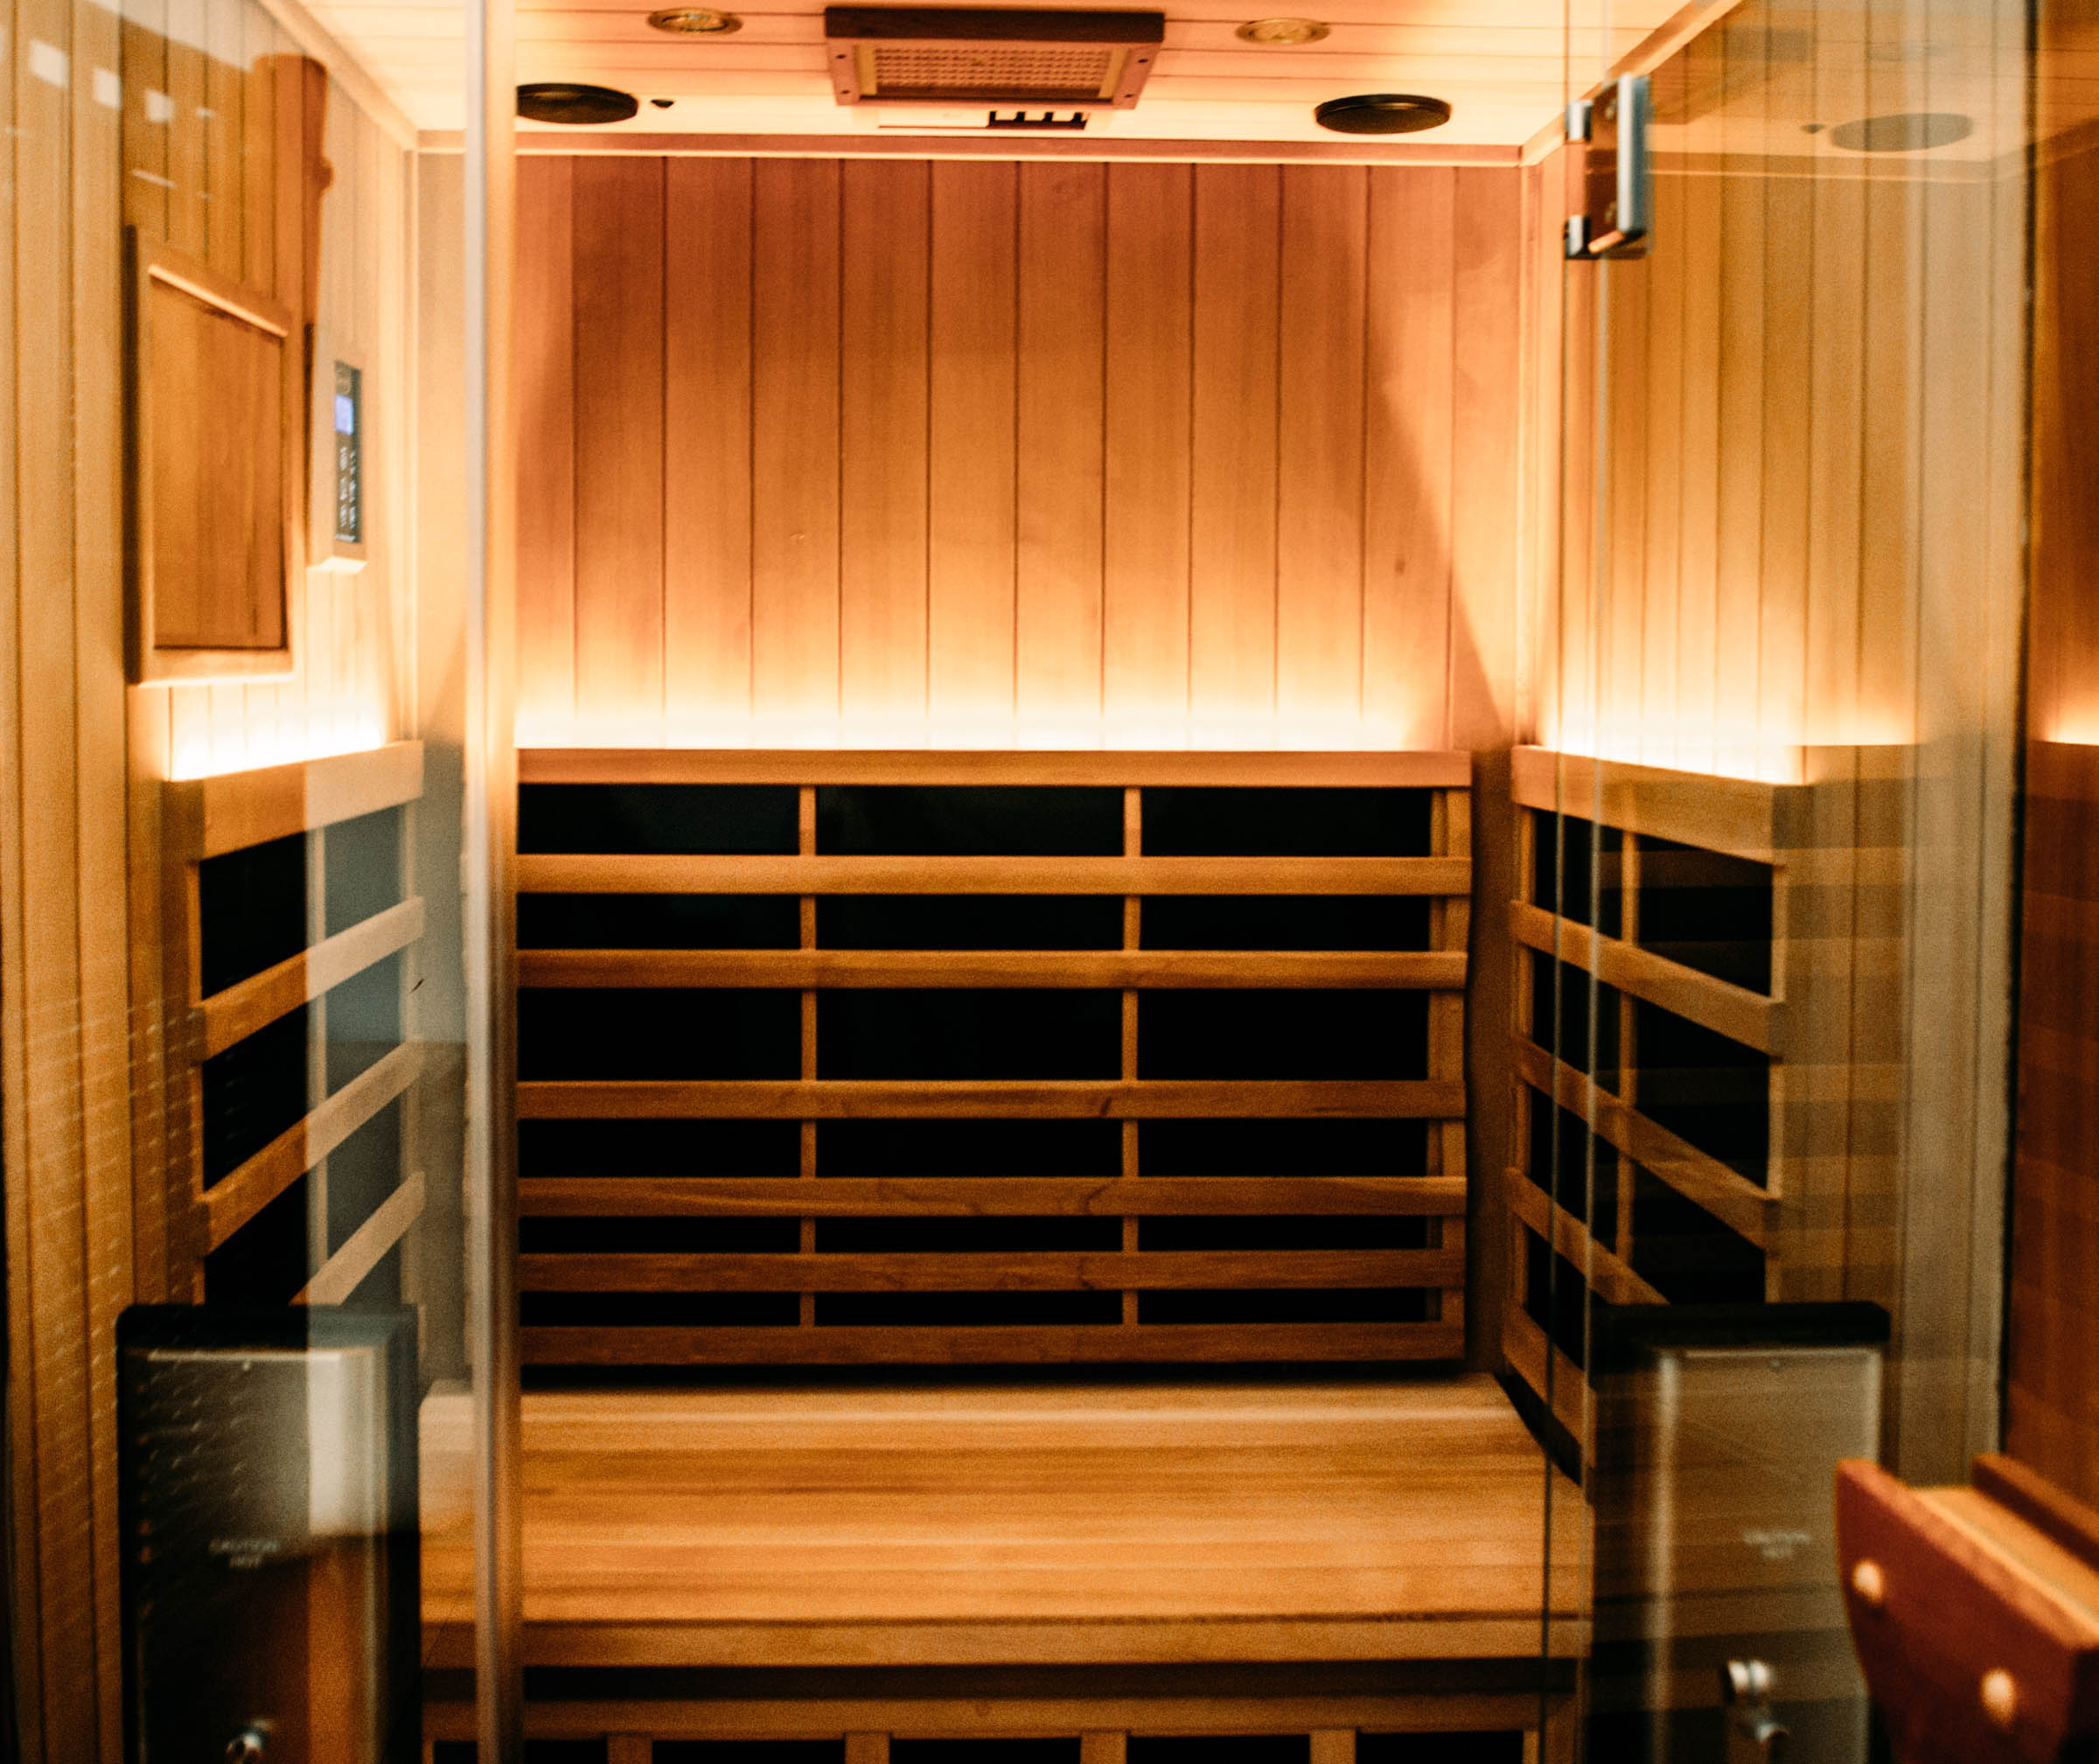 Buy your Sauna sessions online through our Mindbody site by using the links below!